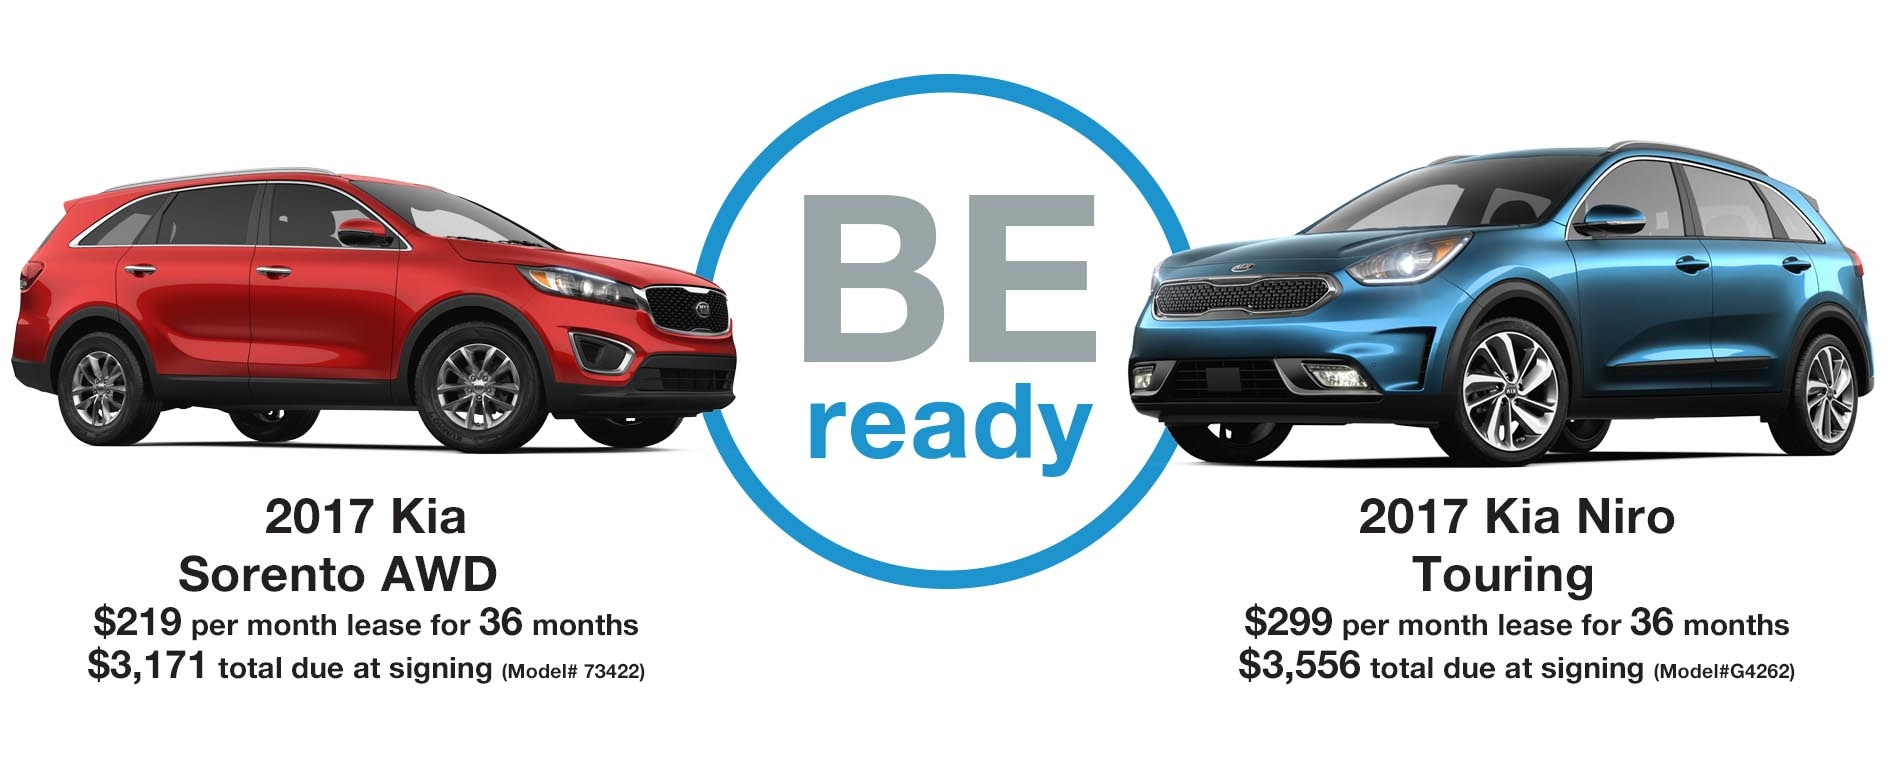 BE READY. Lease a 2017 Sorento for just $219 per month with $3,171 due at signing or lease a 2017 Niro for $299 per month with $3,556 due at signing.